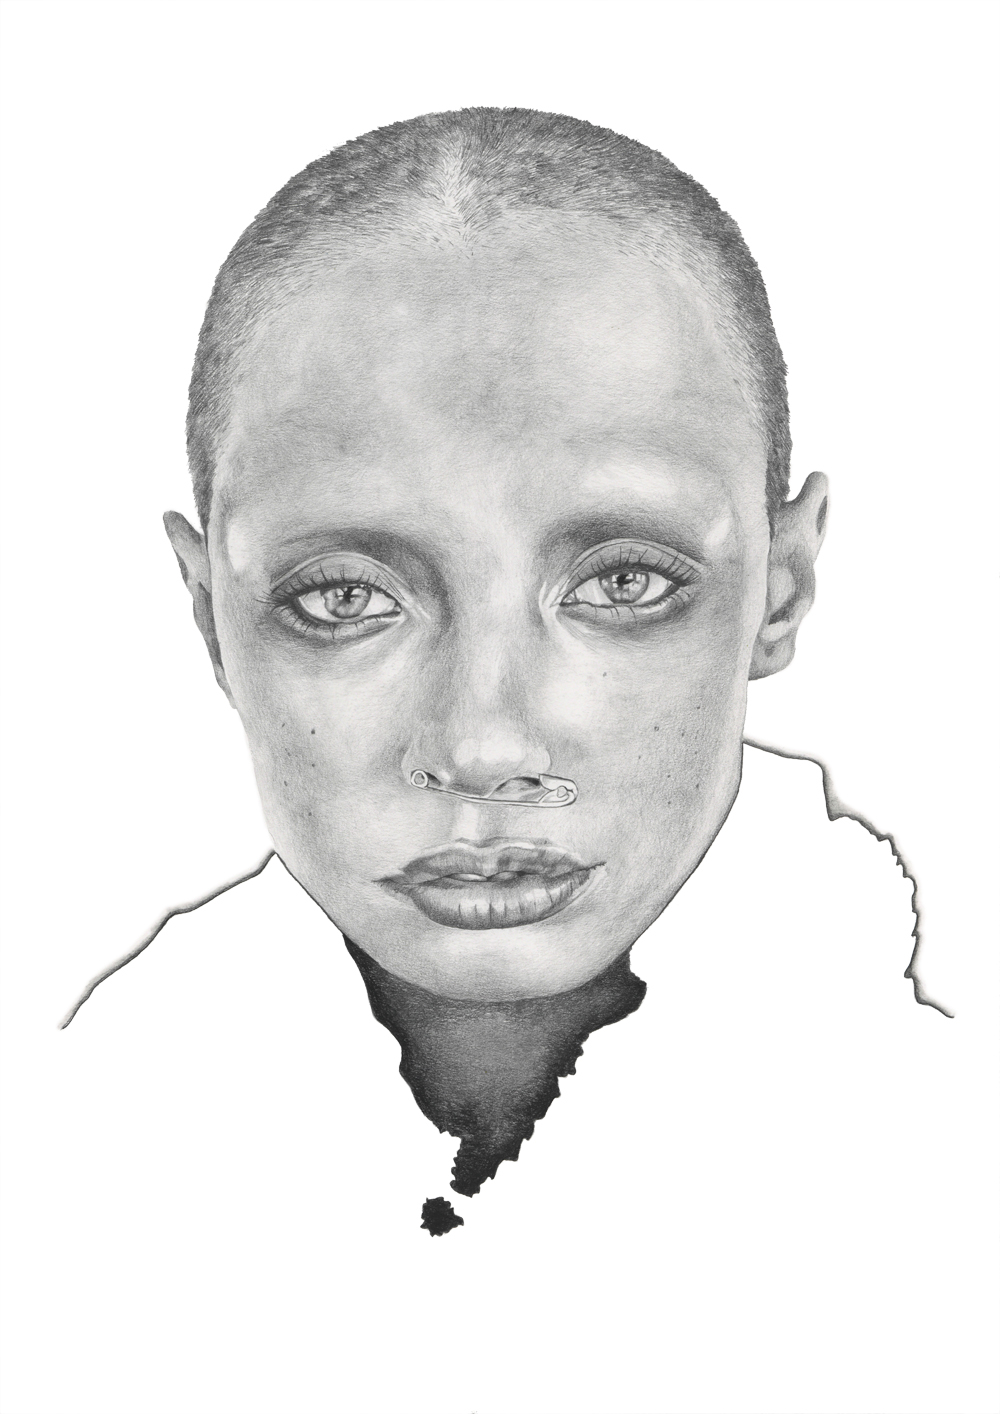 Graphite pencil portrait illustration by Alison Sargent